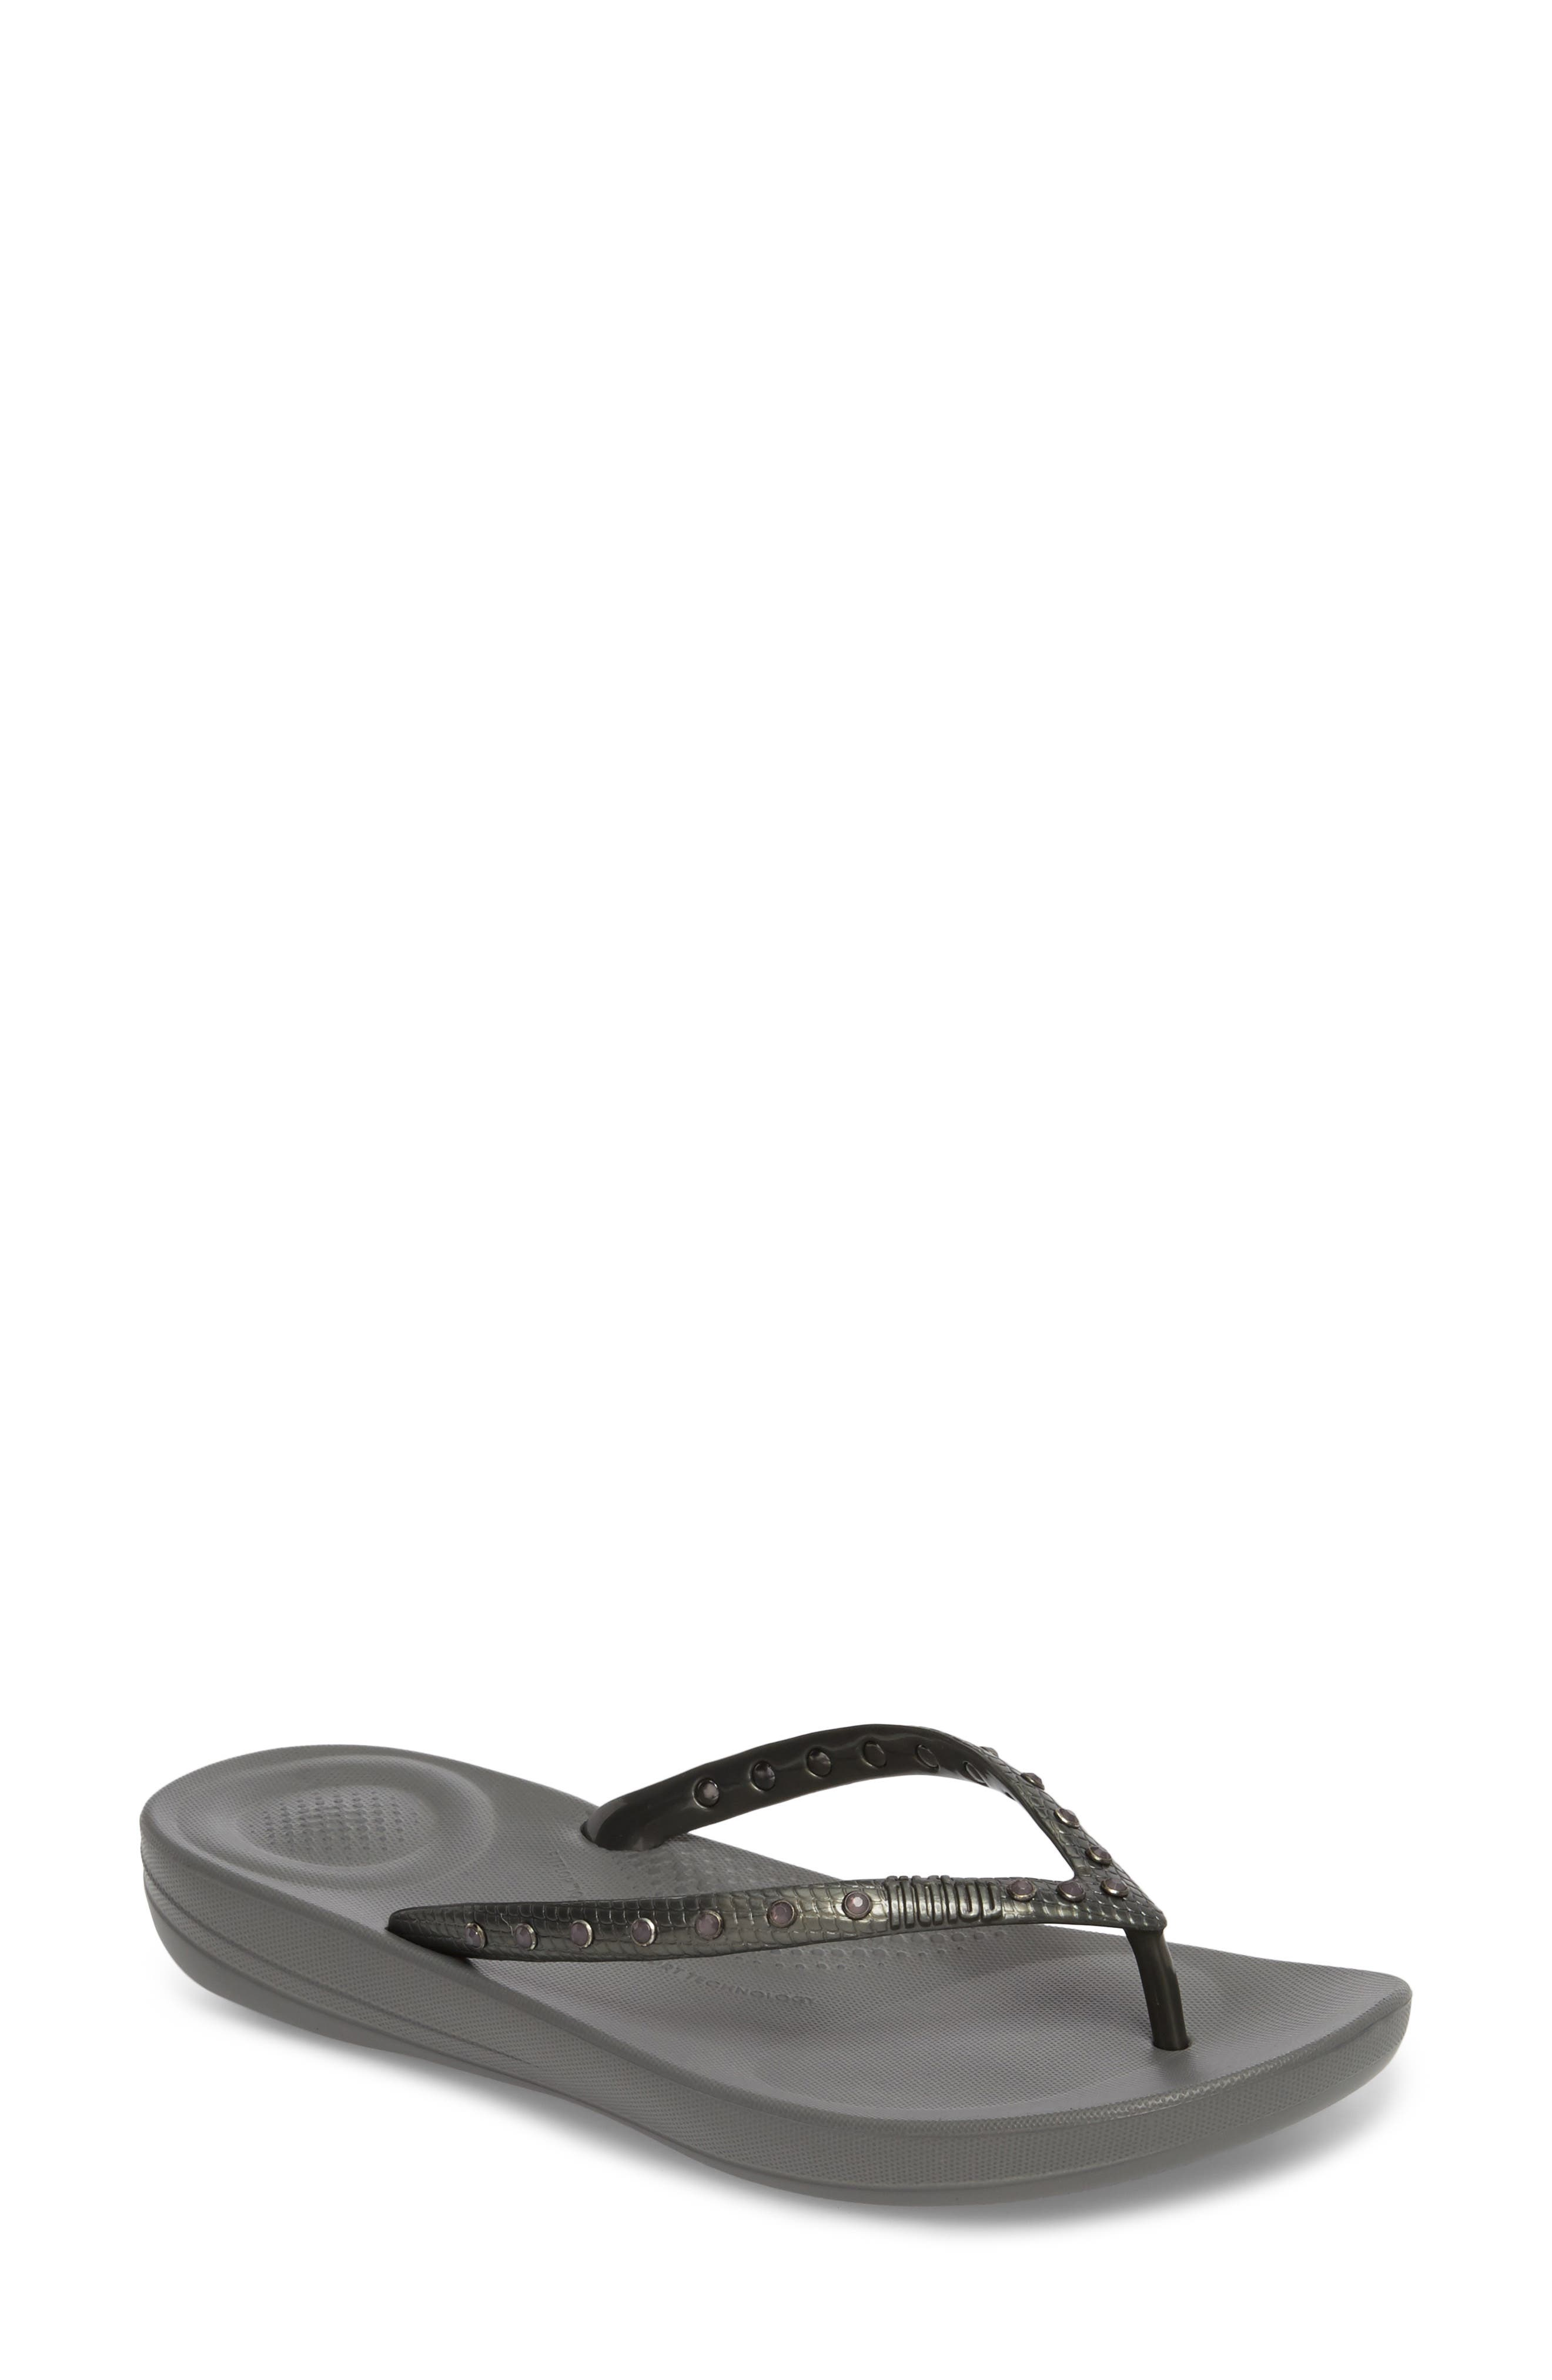 iQushion Flip Flop,                         Main,                         color, CHARCOAL GREY